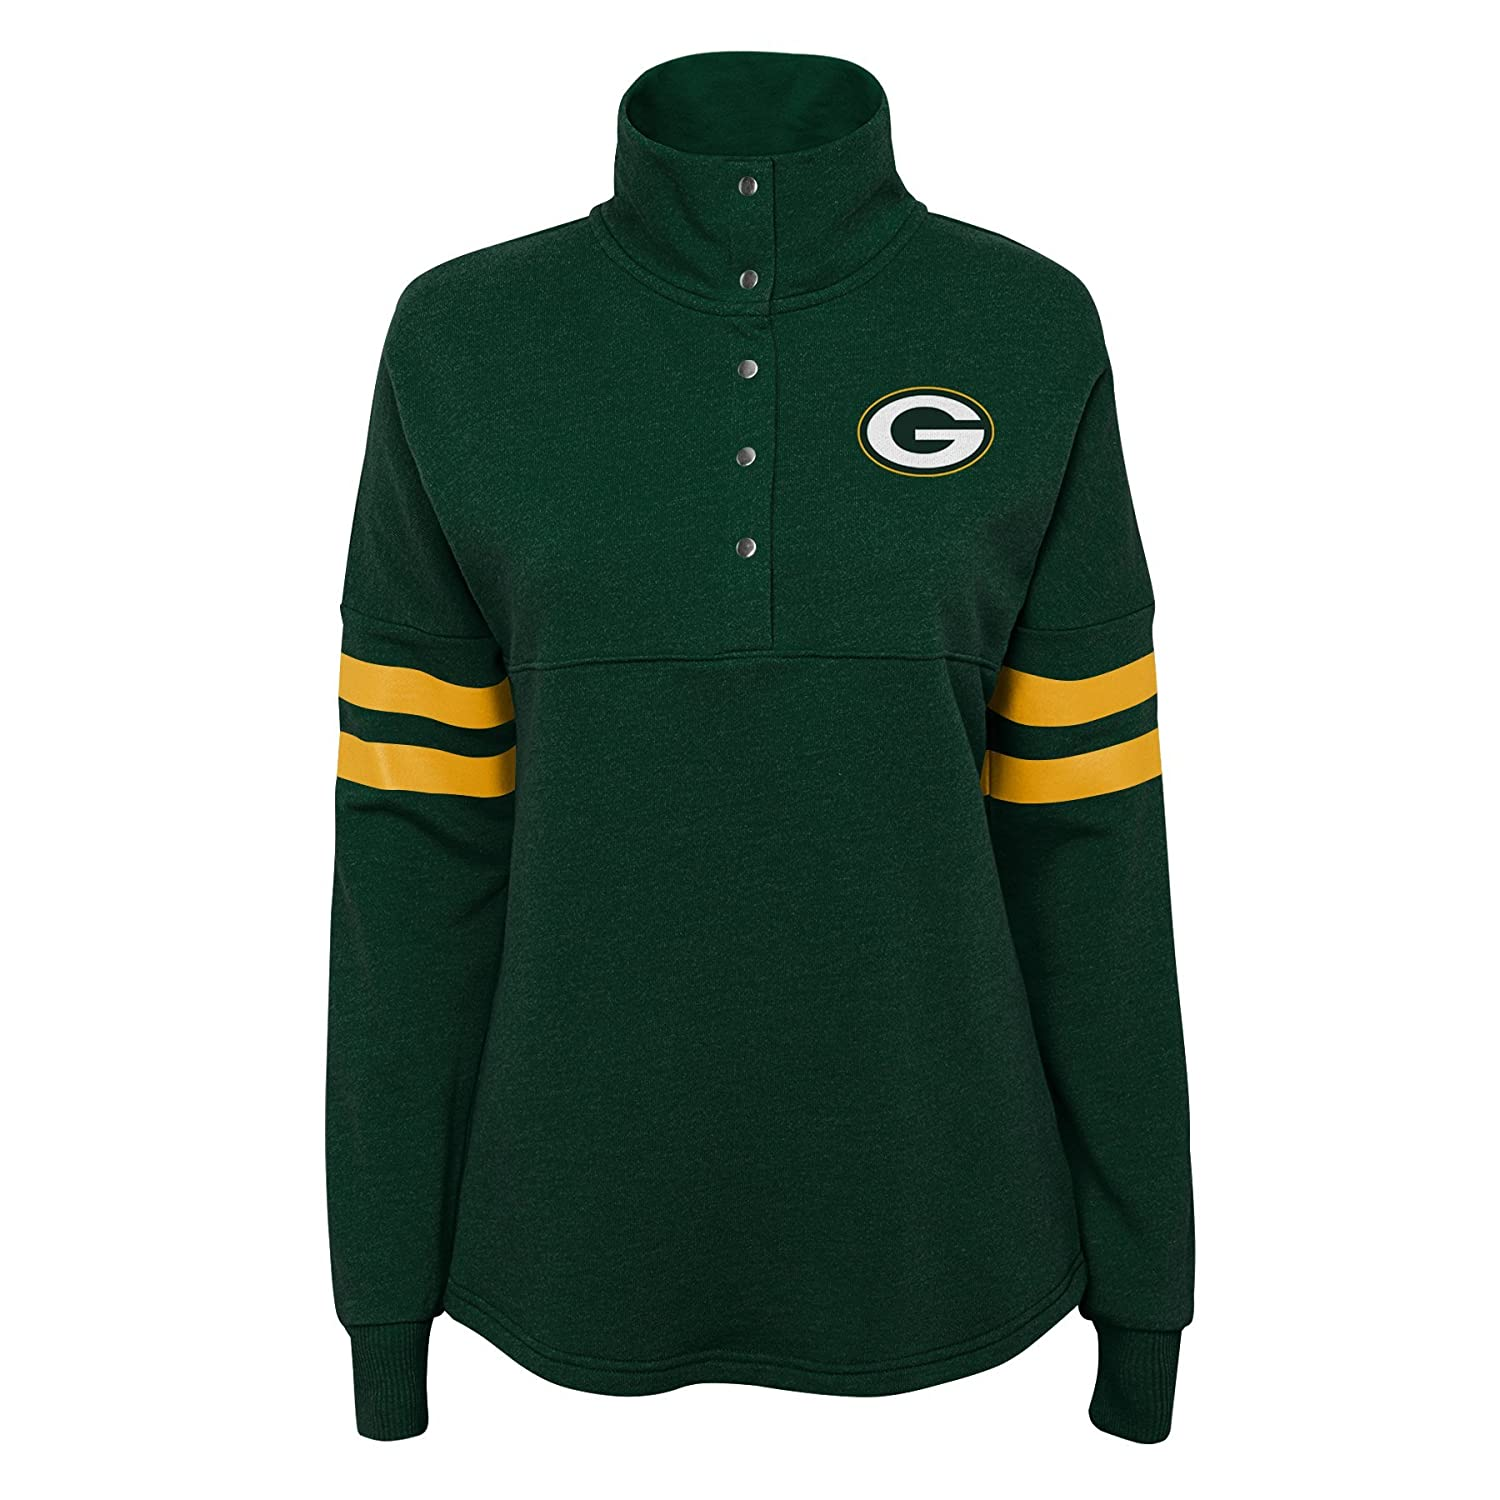 Outerstuff NFL NFL Green Bay Packers Juniors Classic Throw Varsity 1//4 Snap Pullover Top Hunter Green Juniors Small 3-5